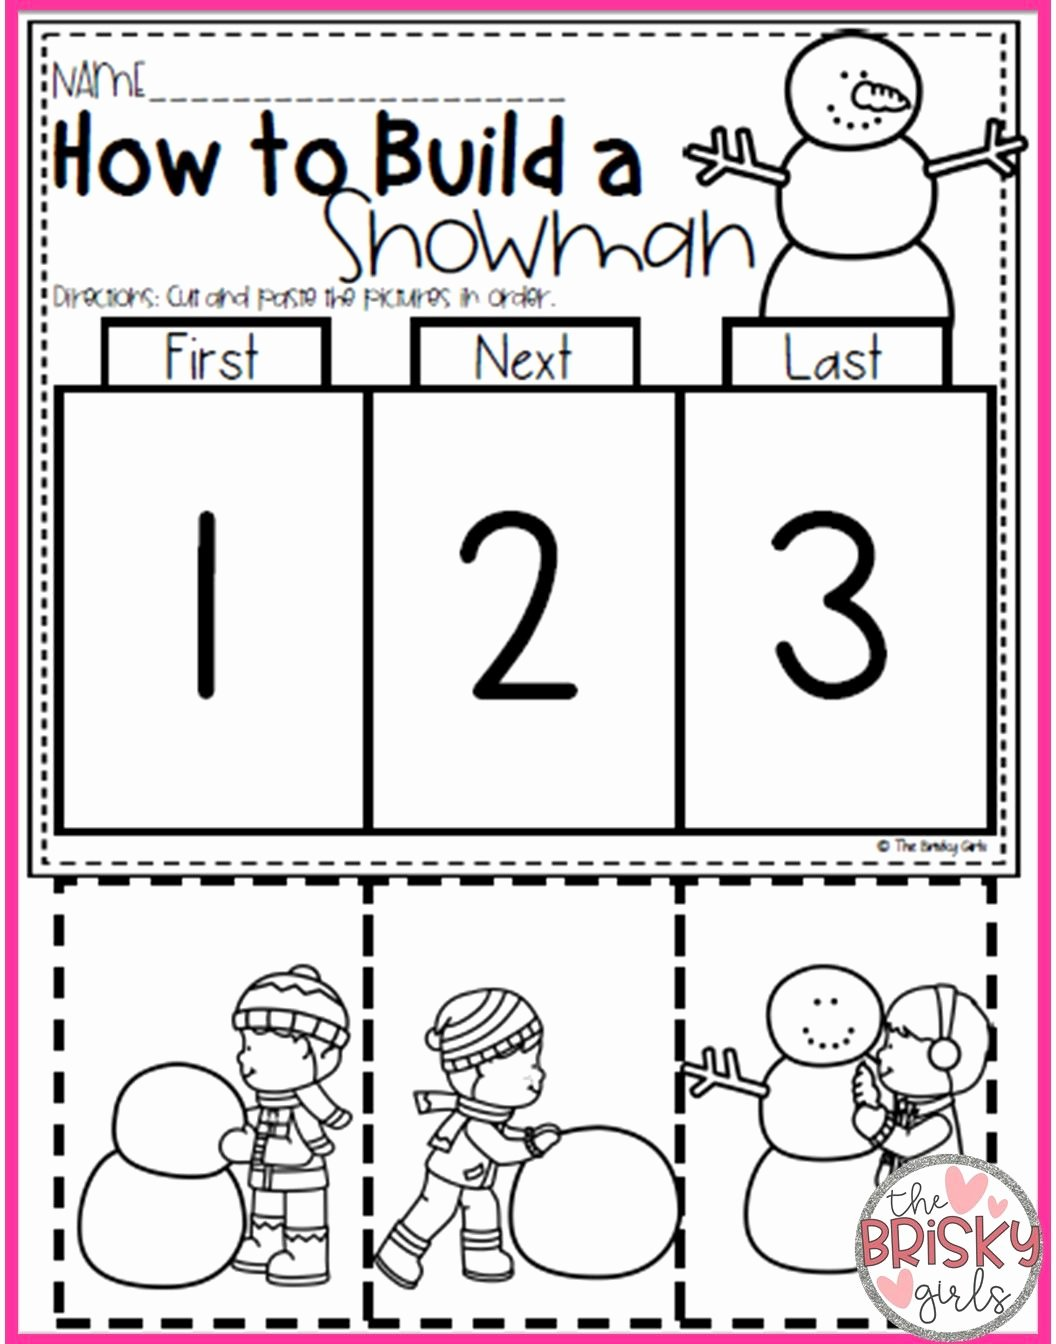 Winter Activity Worksheets for Preschoolers Ideas Winter Activities Winter Activities for Kids Winter